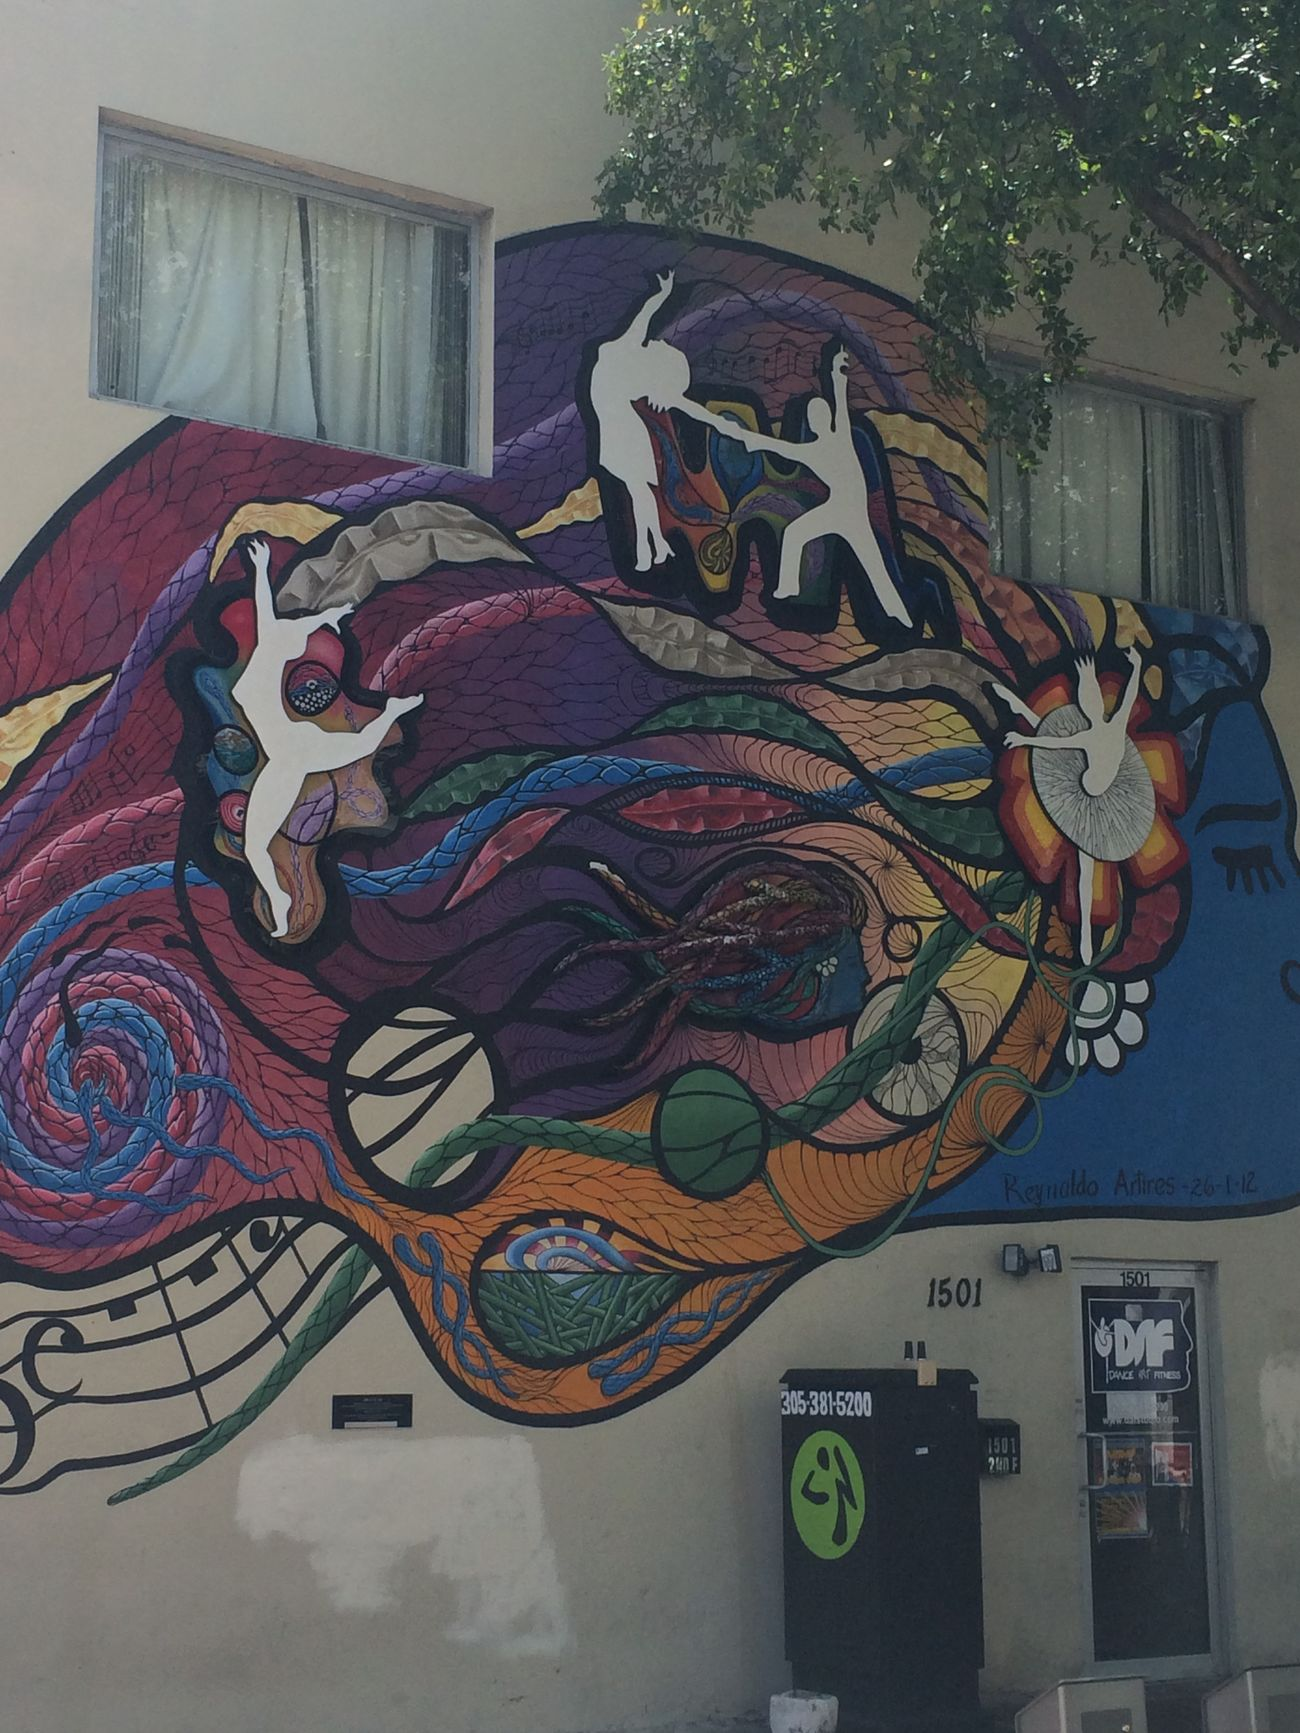 One of many wallpaintings in Little Havana